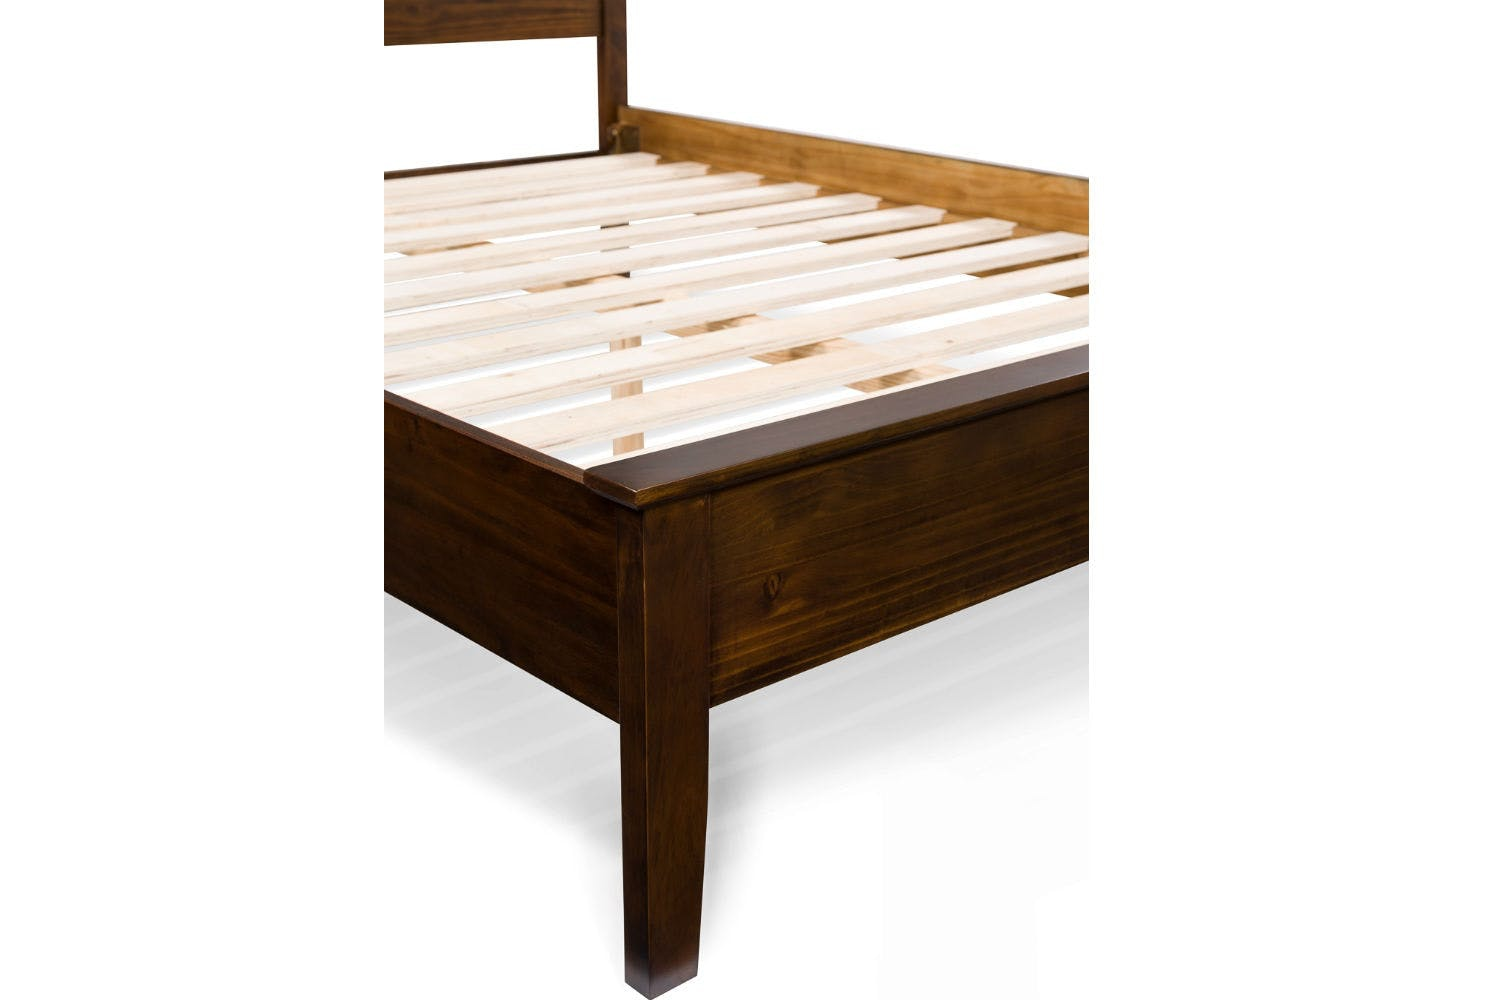 Wentworth Small Double Bed Frame | 4ft